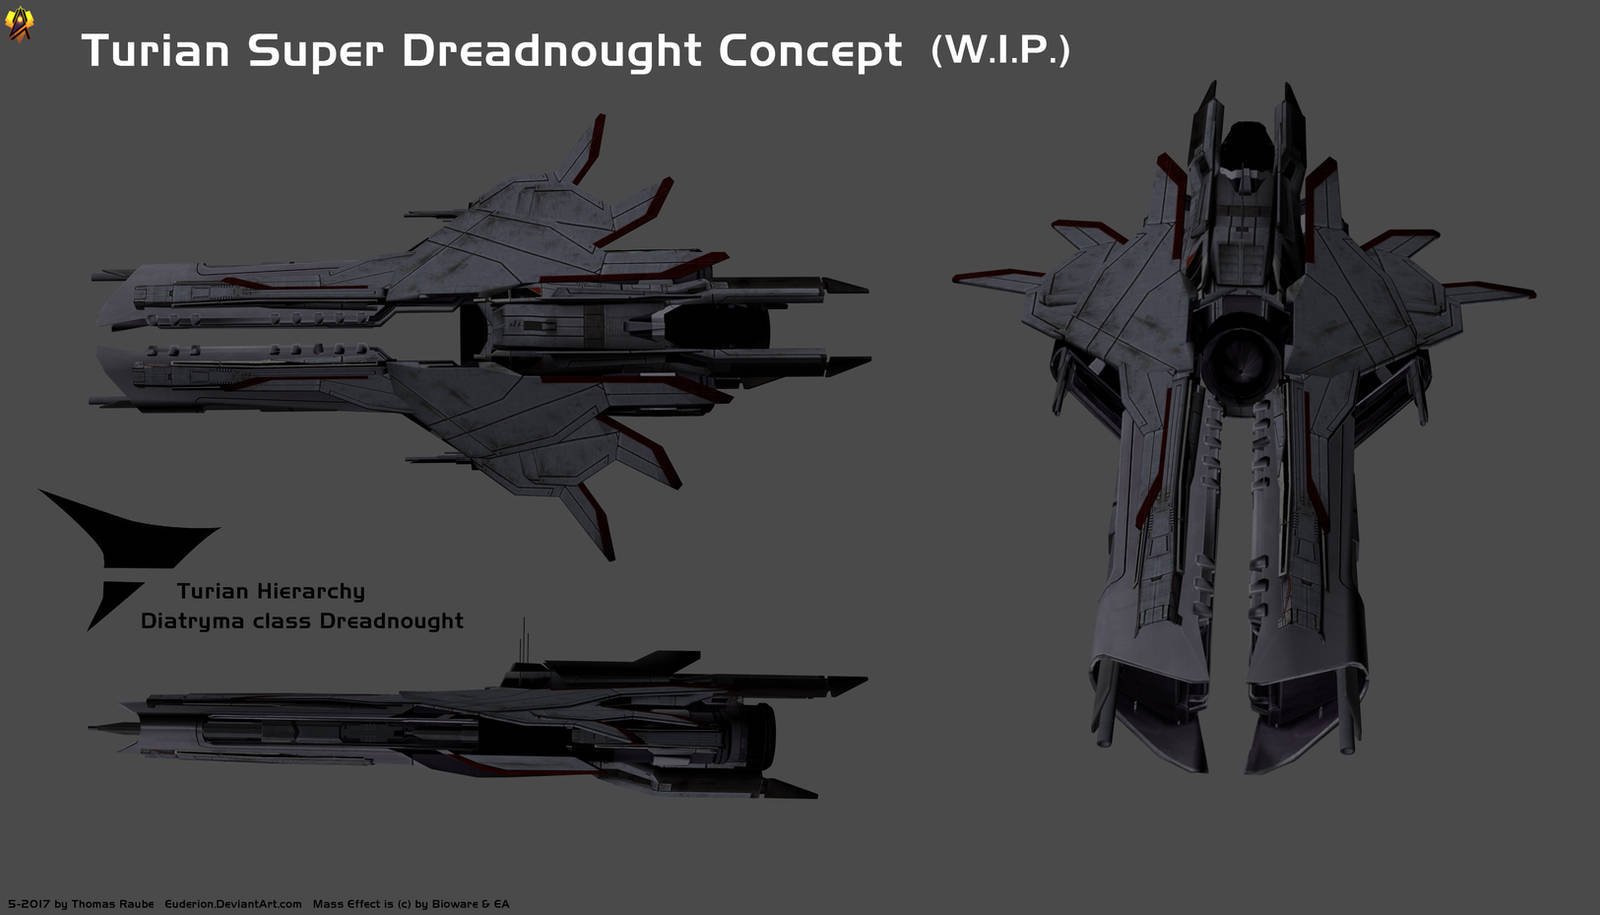 Turian Super Dreadnought Concept By Euderion On Deviantart